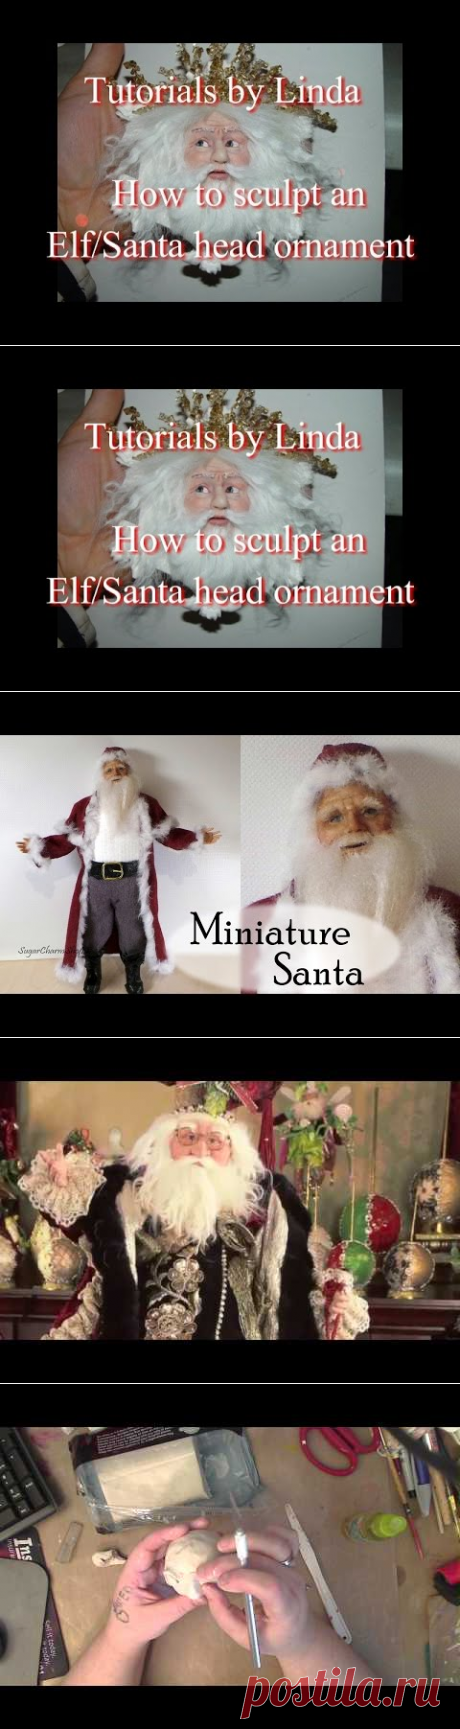 Tutorial how to sculpt a Polymer clay Santa ornament part two - YouTube